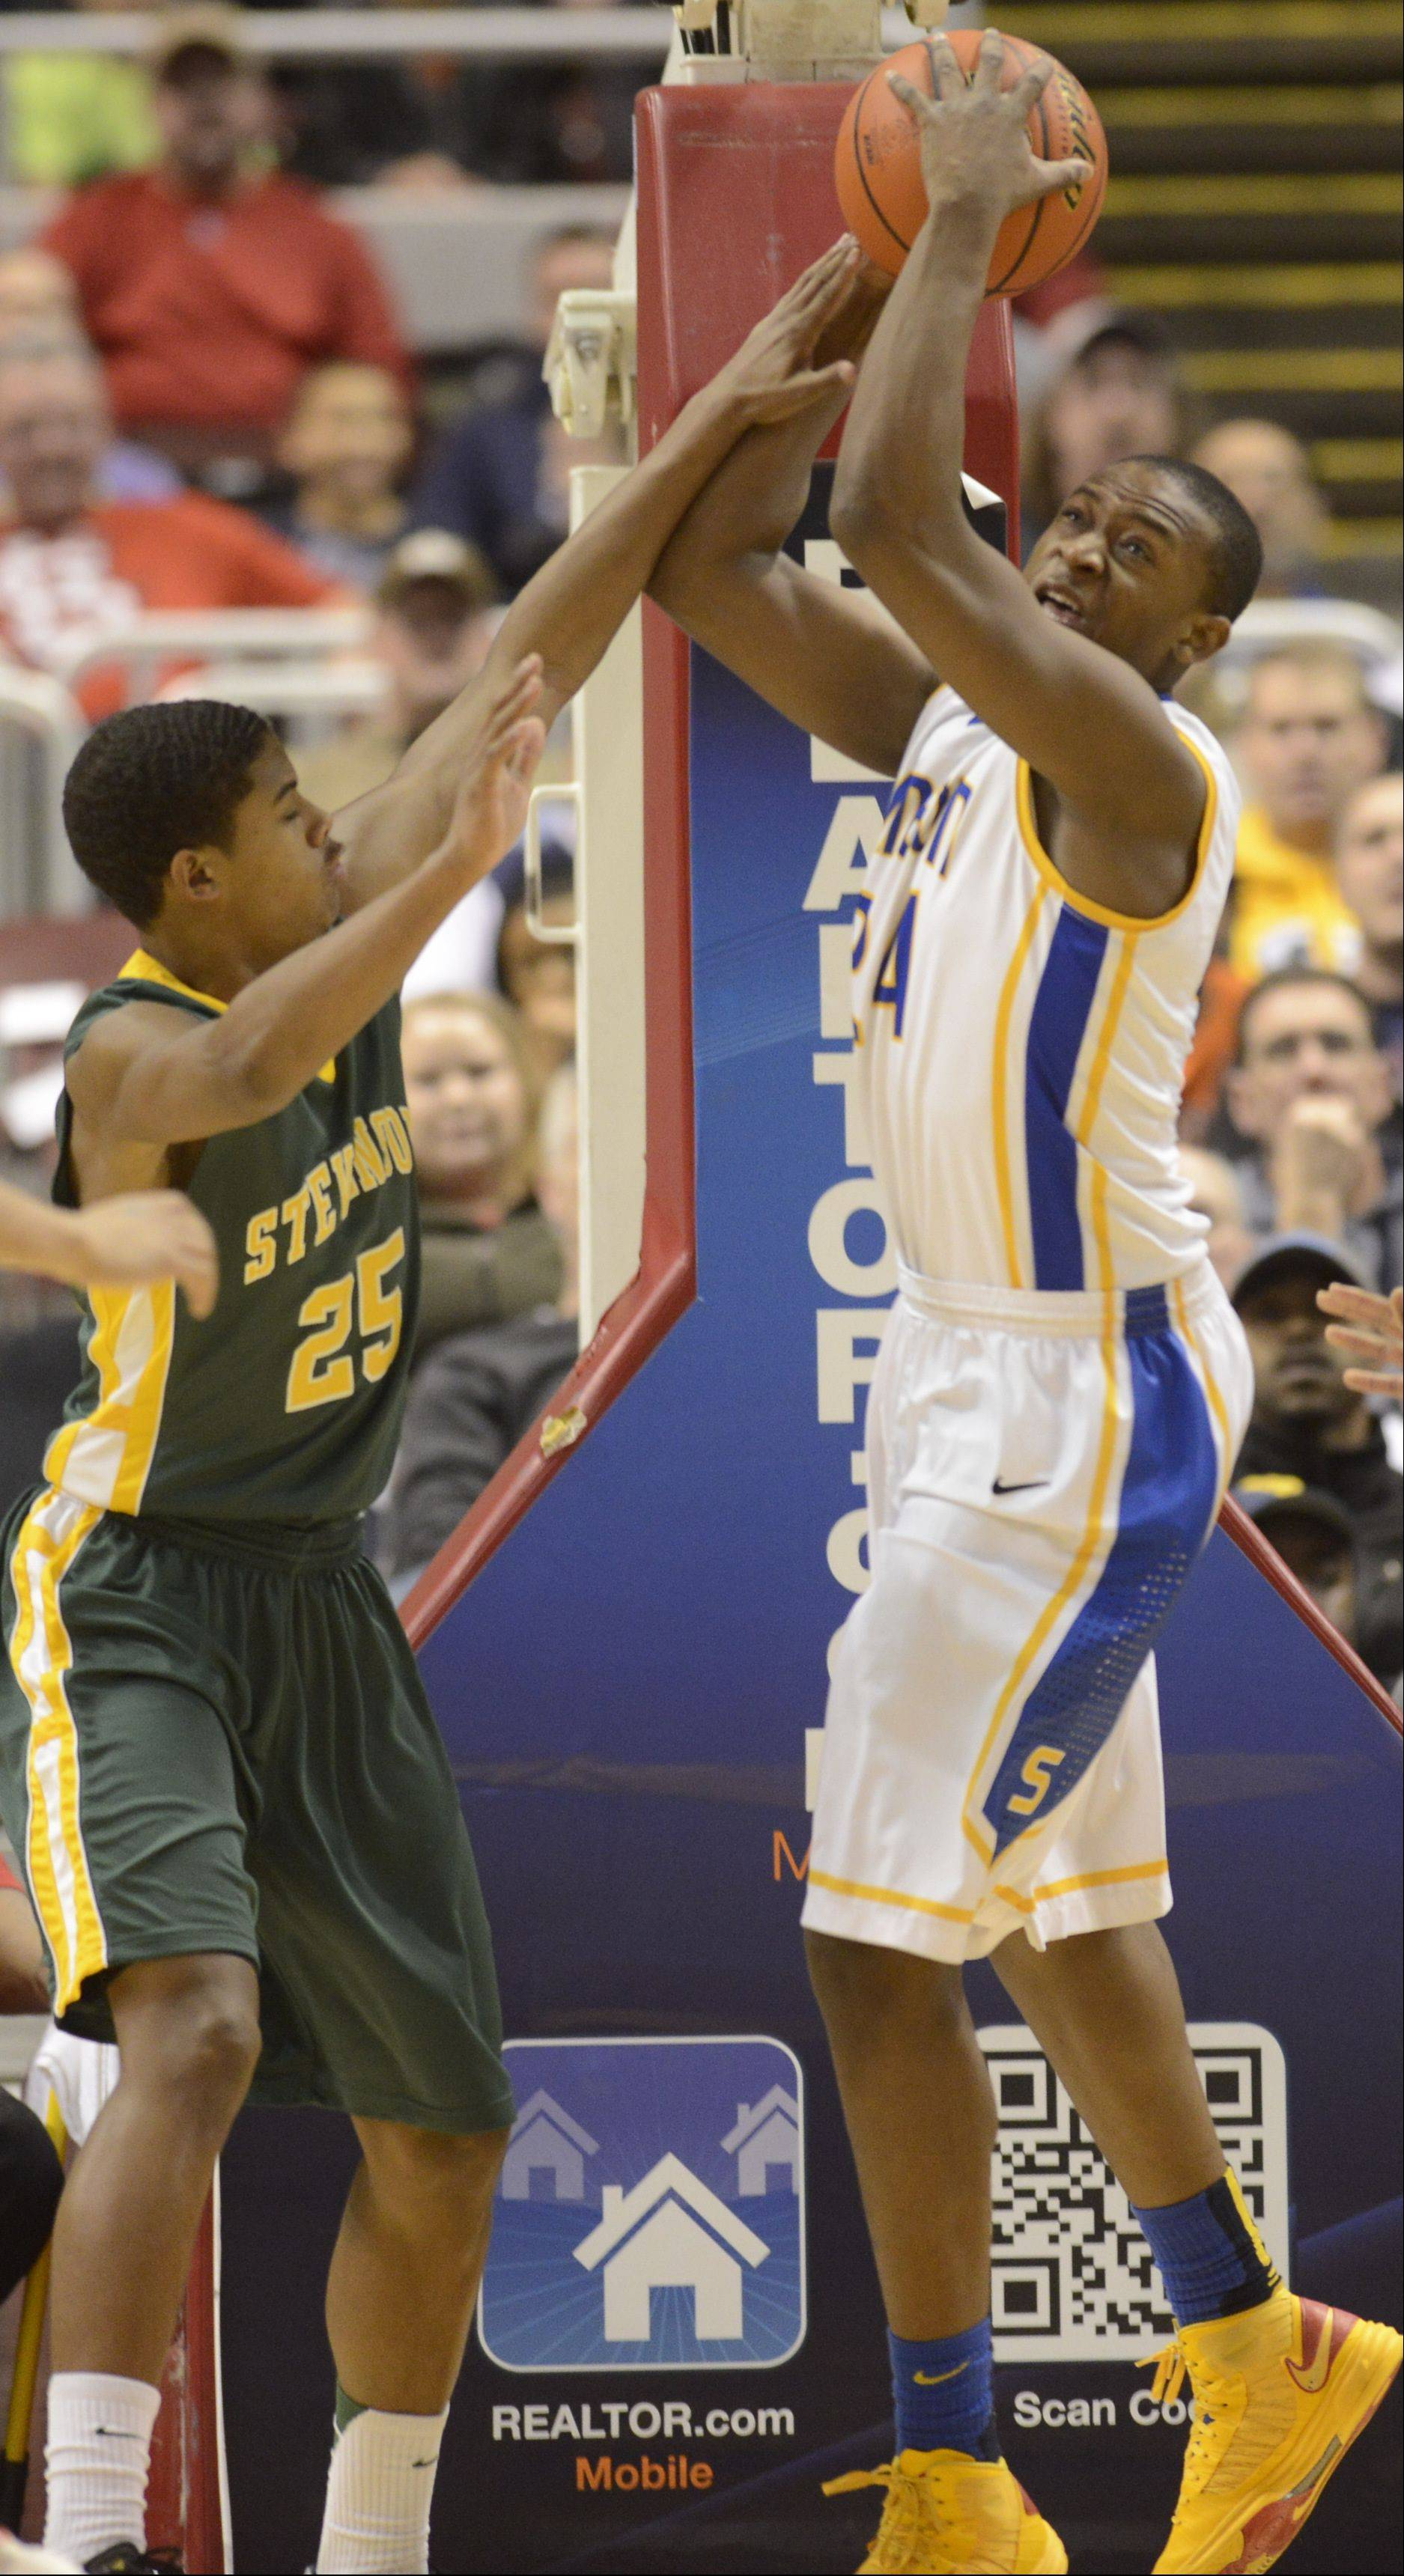 Stevenson�s Cameron Green, left, defends Simeon�s Kendall Pollard during the Class 4A state championship game Saturday in Peoria.